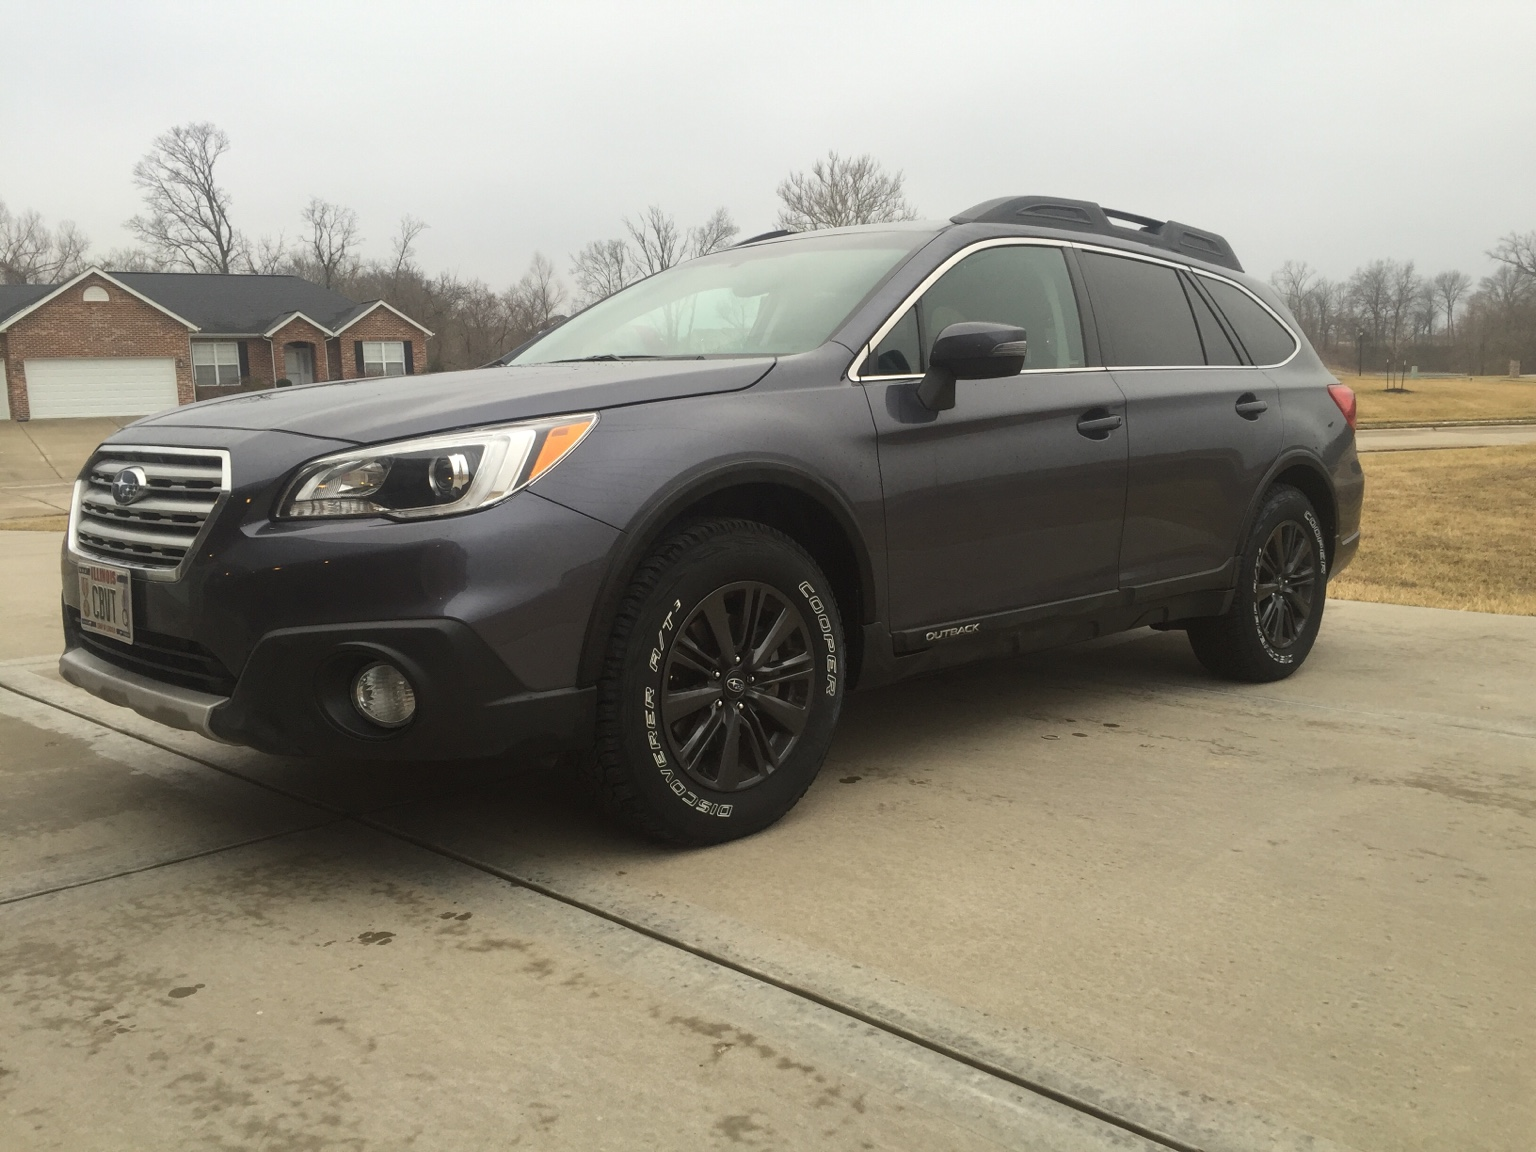 2015 outback 2 5 limited wrx wheels page 2 subaru outback subaru outback forums. Black Bedroom Furniture Sets. Home Design Ideas